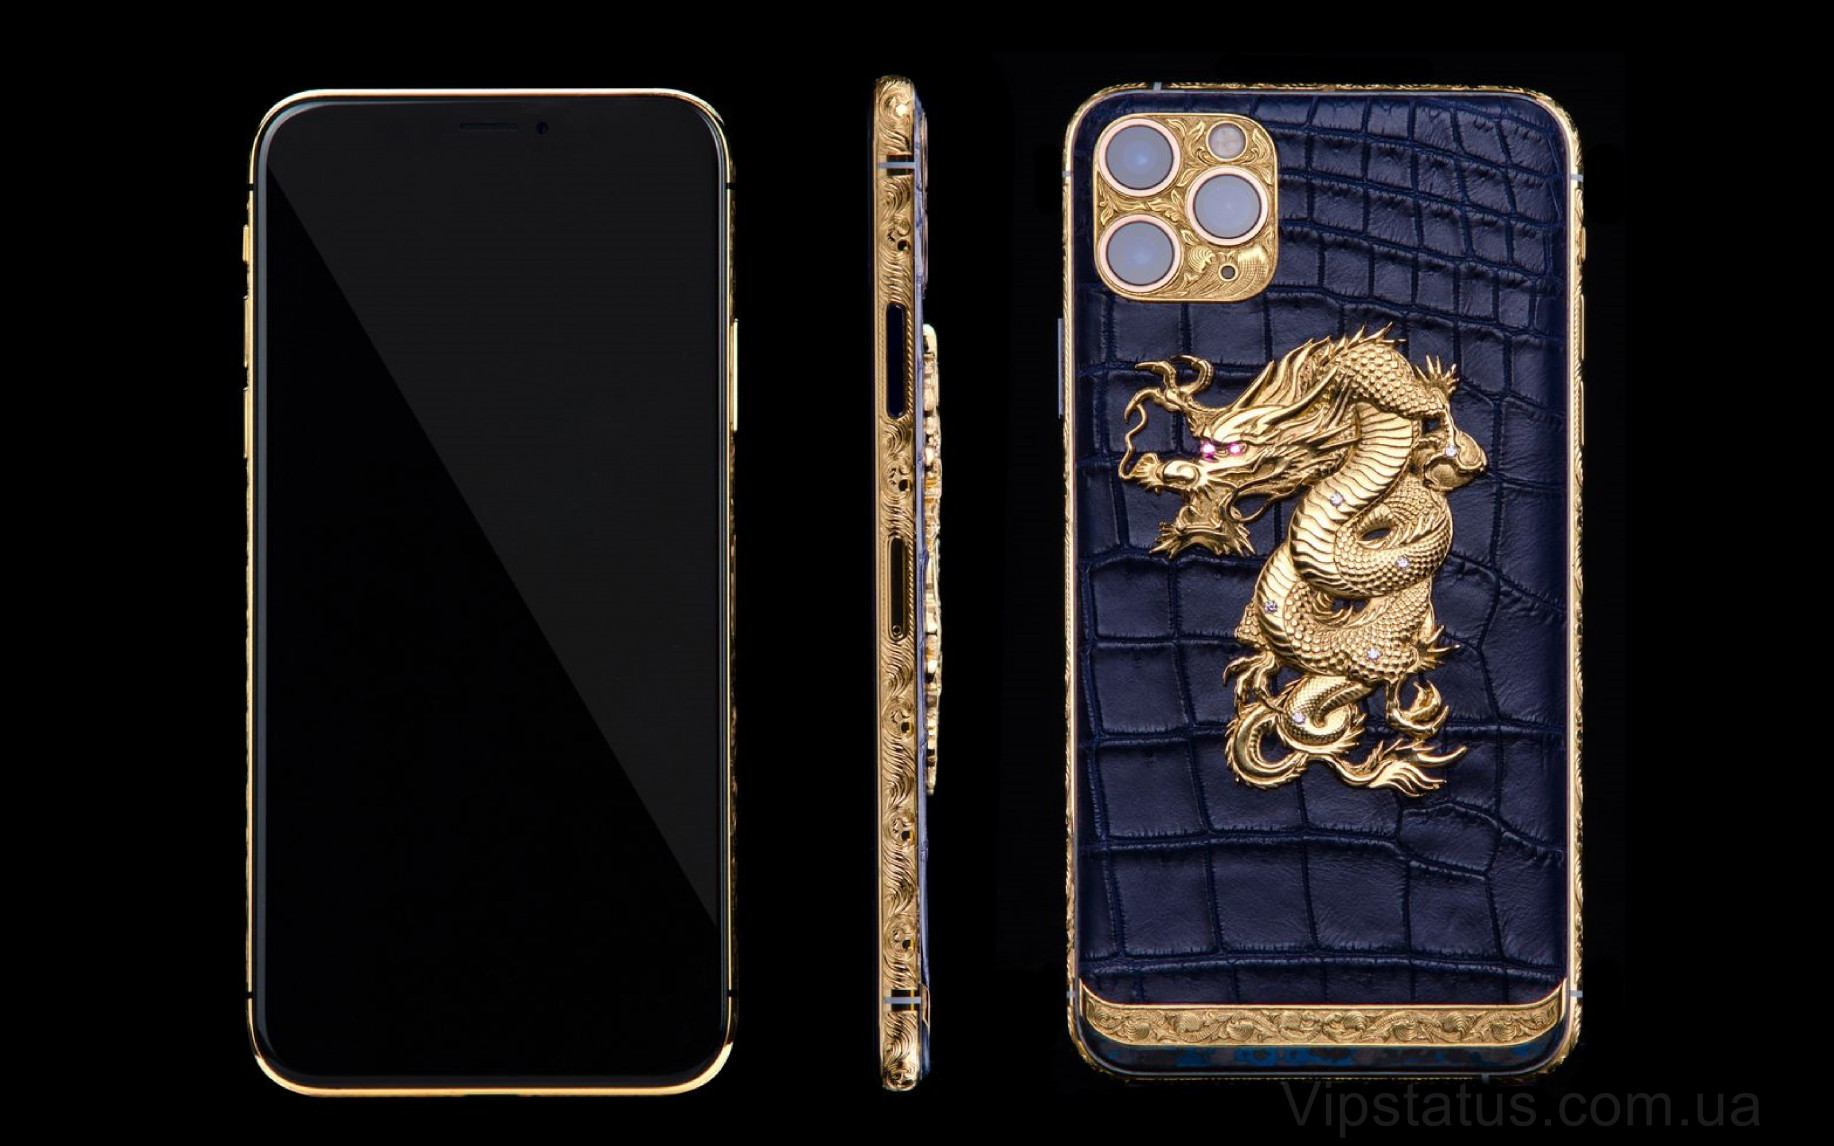 Elite Oriental Dragon IPHONE 11 PRO MAX 512 GB Oriental Dragon IPHONE 11 PRO MAX 512 GB image 6